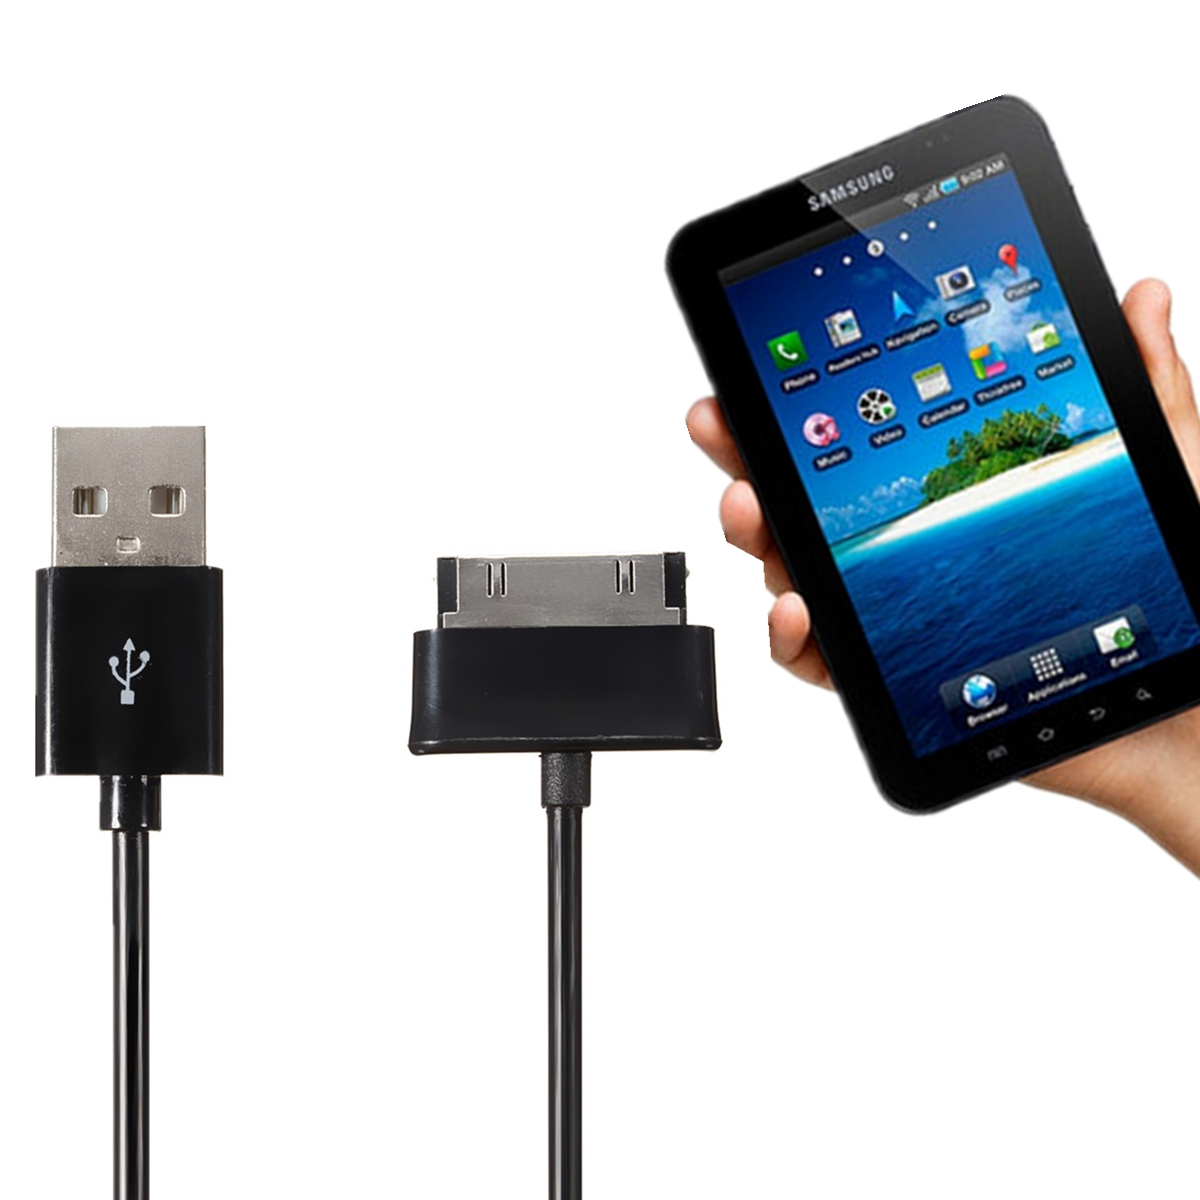 USB Data Cable Sync Charger for Samsung Galaxy TAB 2